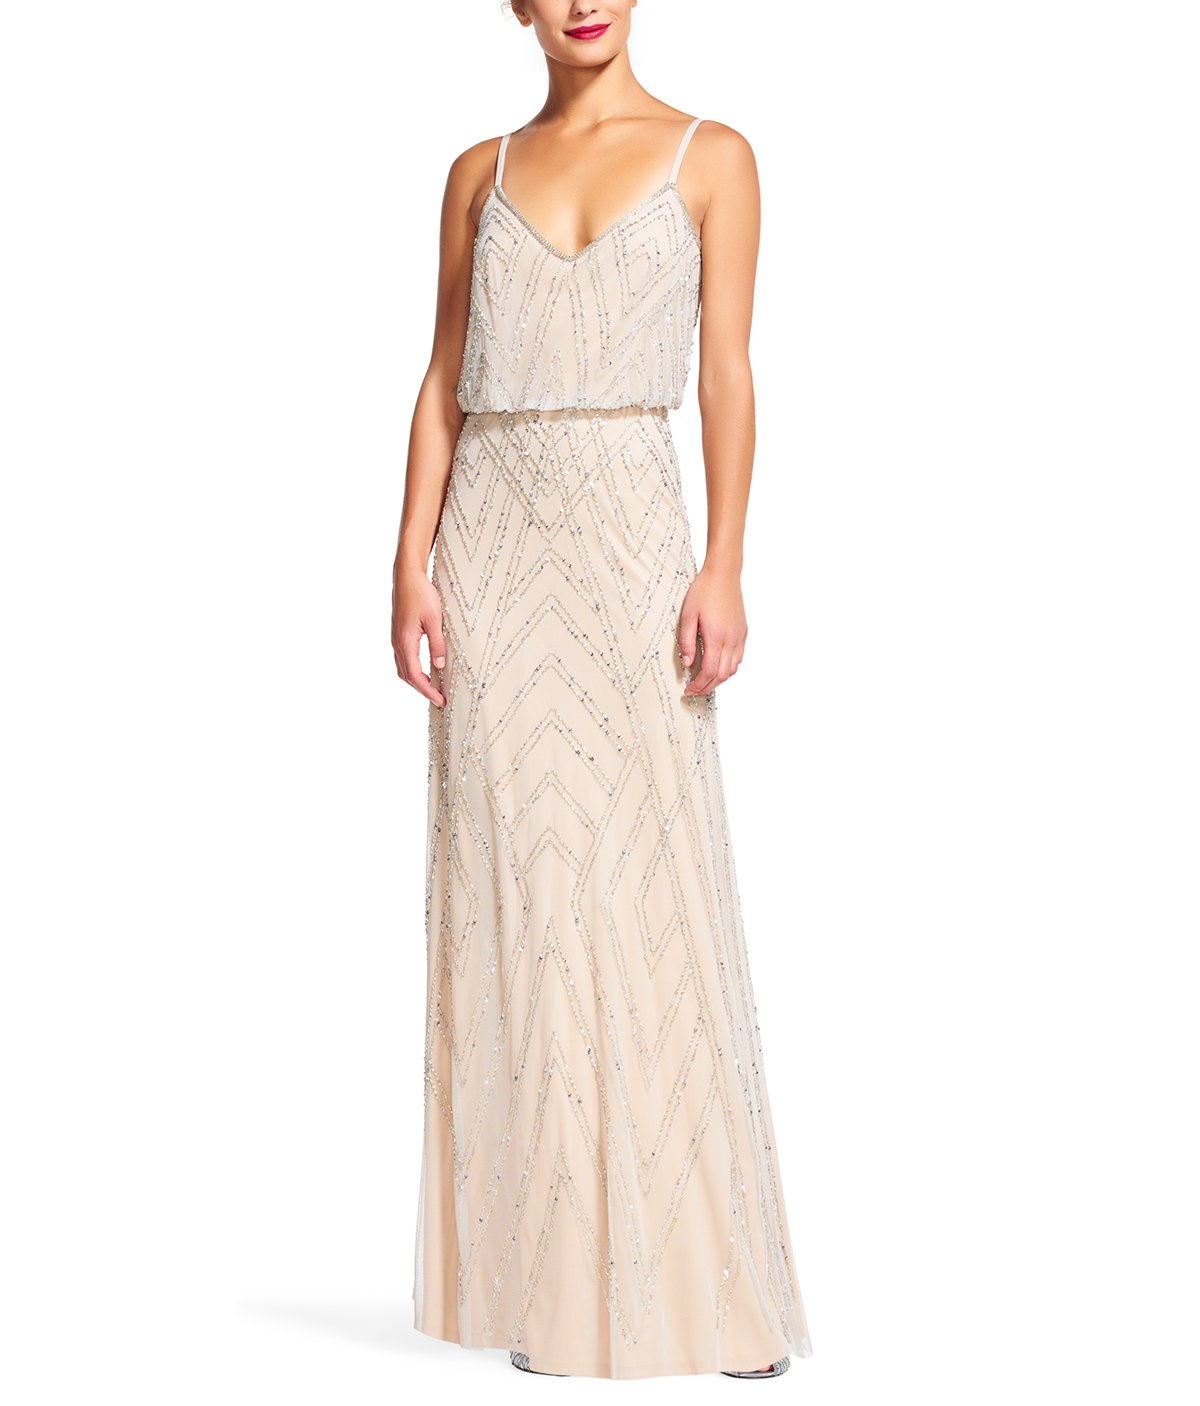 Adrianna Papell Diamond Beaded Blouson Gown Bridesmaid Dress | Brideside